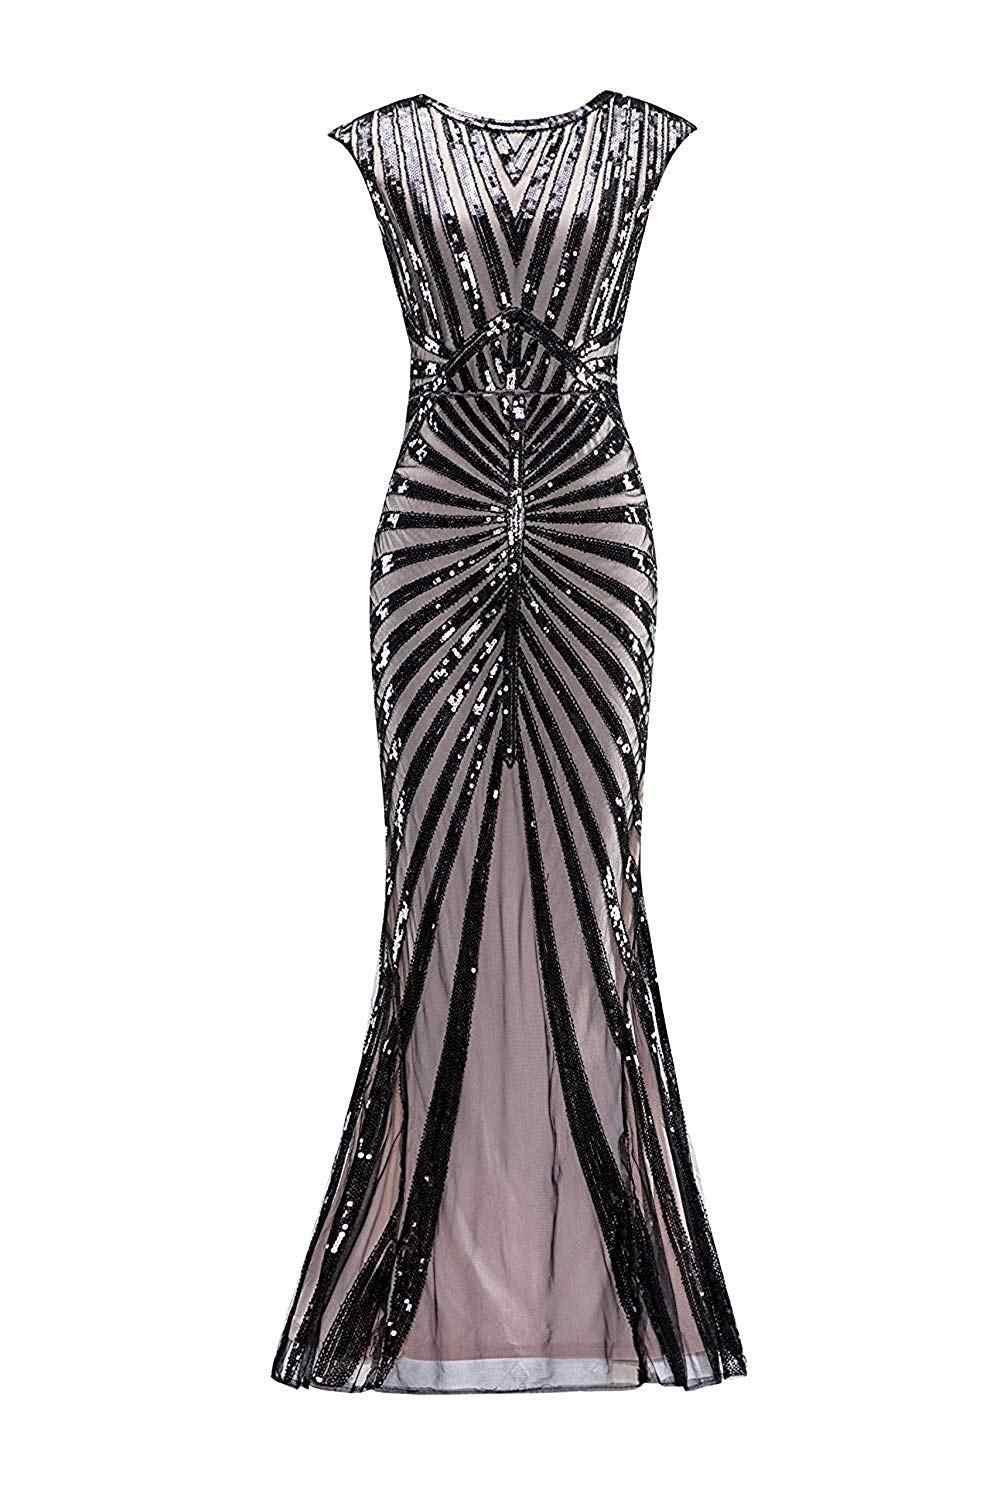 Plus size Formal Dress 1920s Sequin Mermaid Formal Gatsby Flapper Dress  Long Gown Party